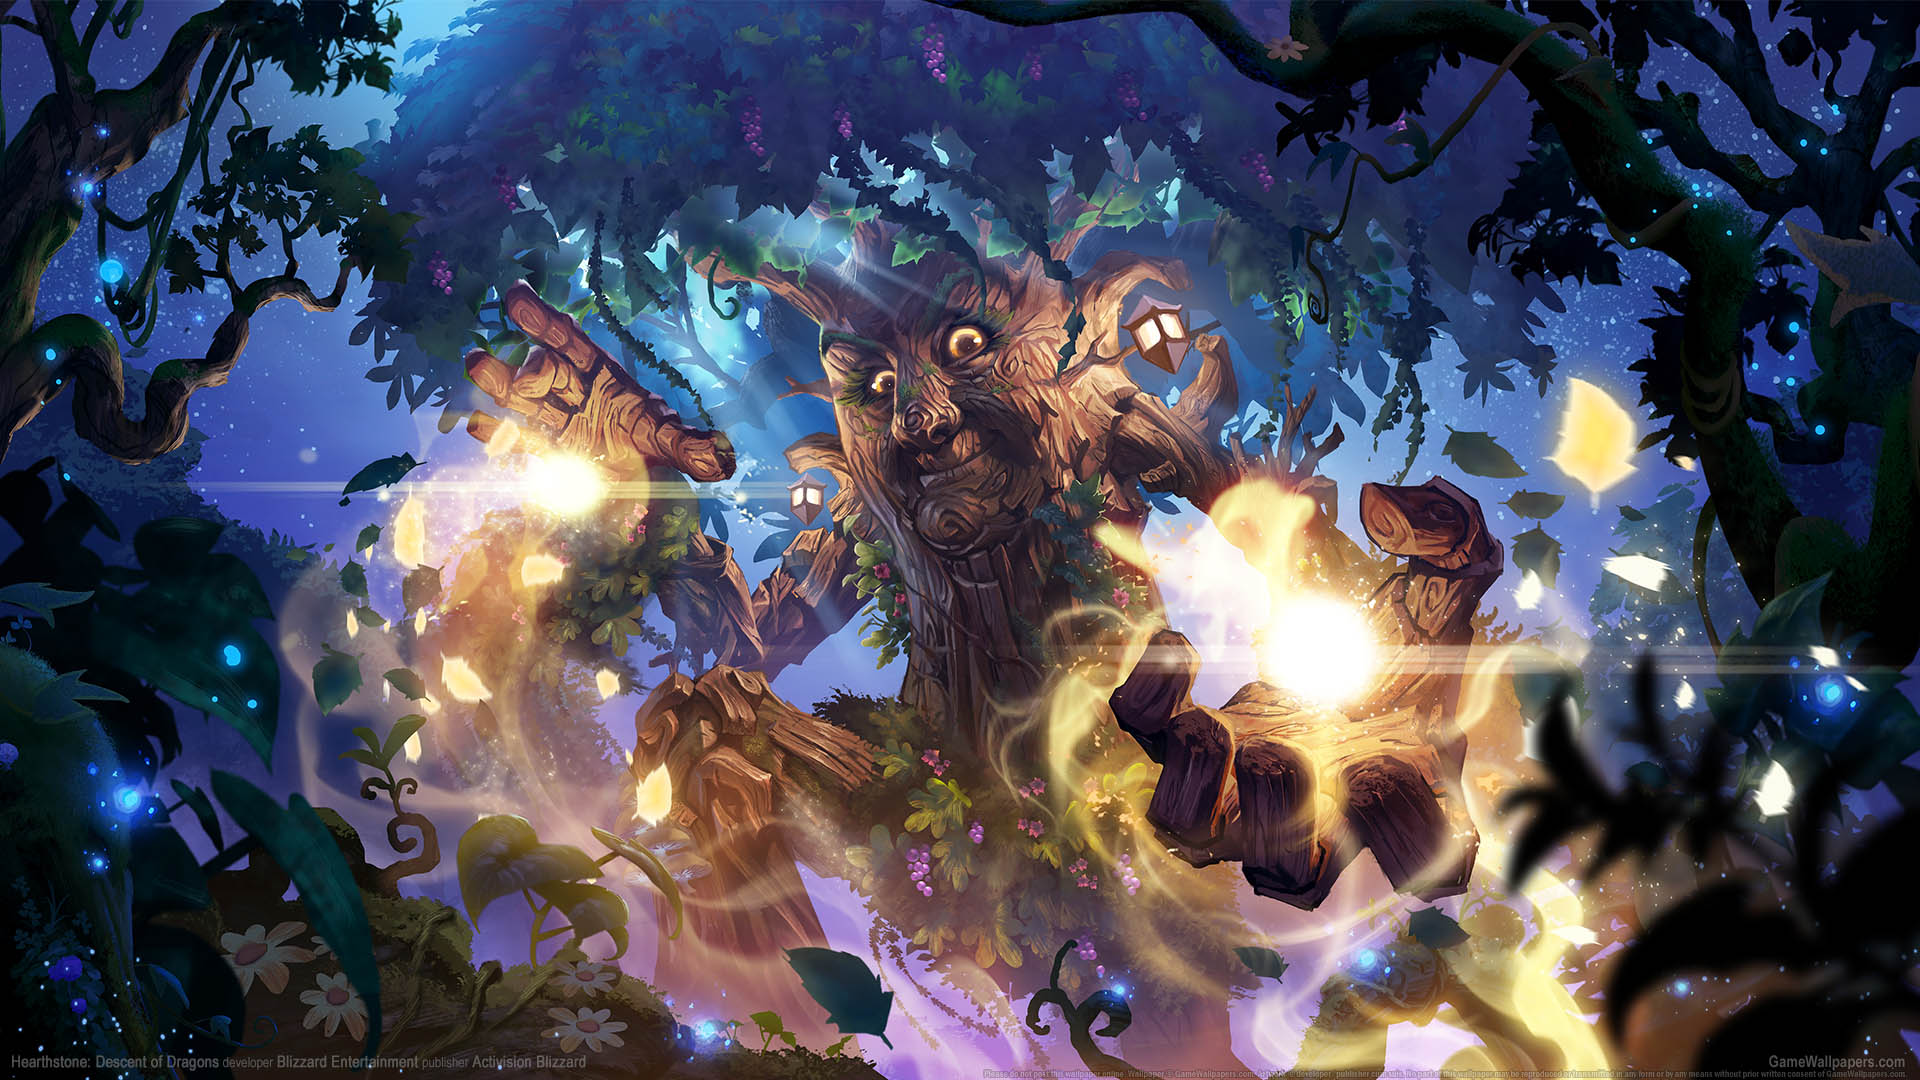 Hearthstone: Descent of Dragons wallpaper 02 1920x1080